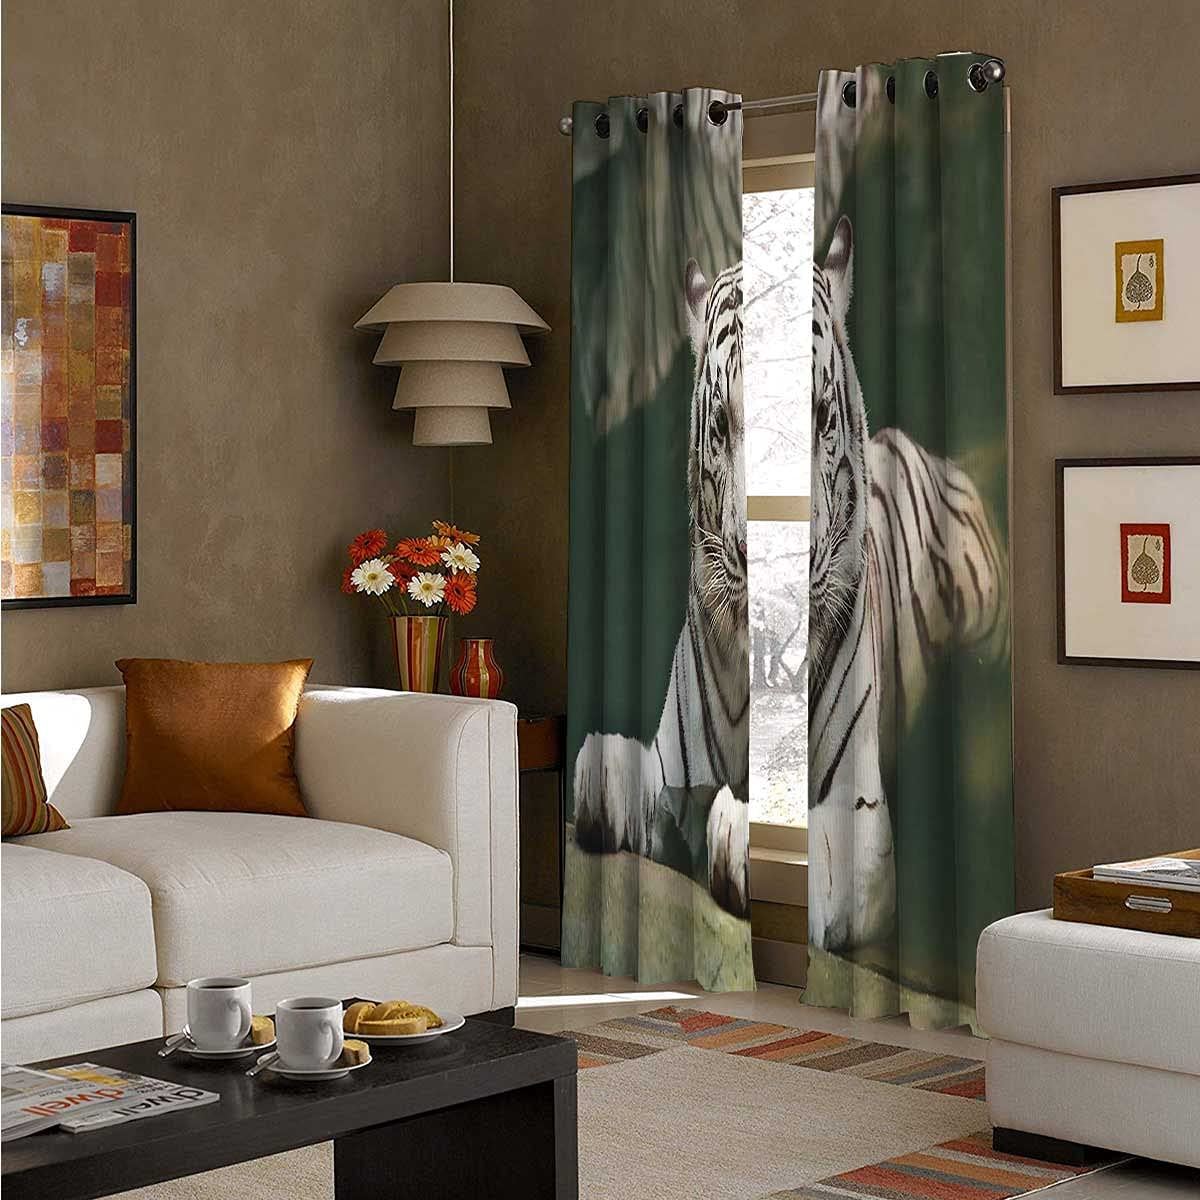 2021new shipping free shipping Room Cash special price Darkening Grommet Curtains 96 White Inch Tiger Swimmin Long